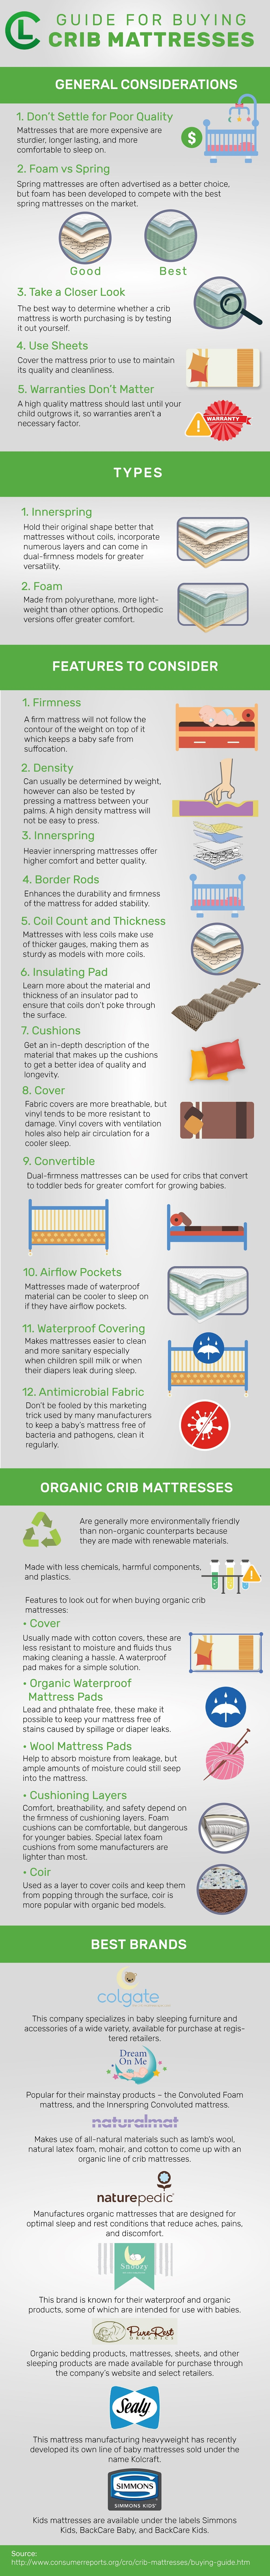 Guide For Buying Crib Mattresses Infographic